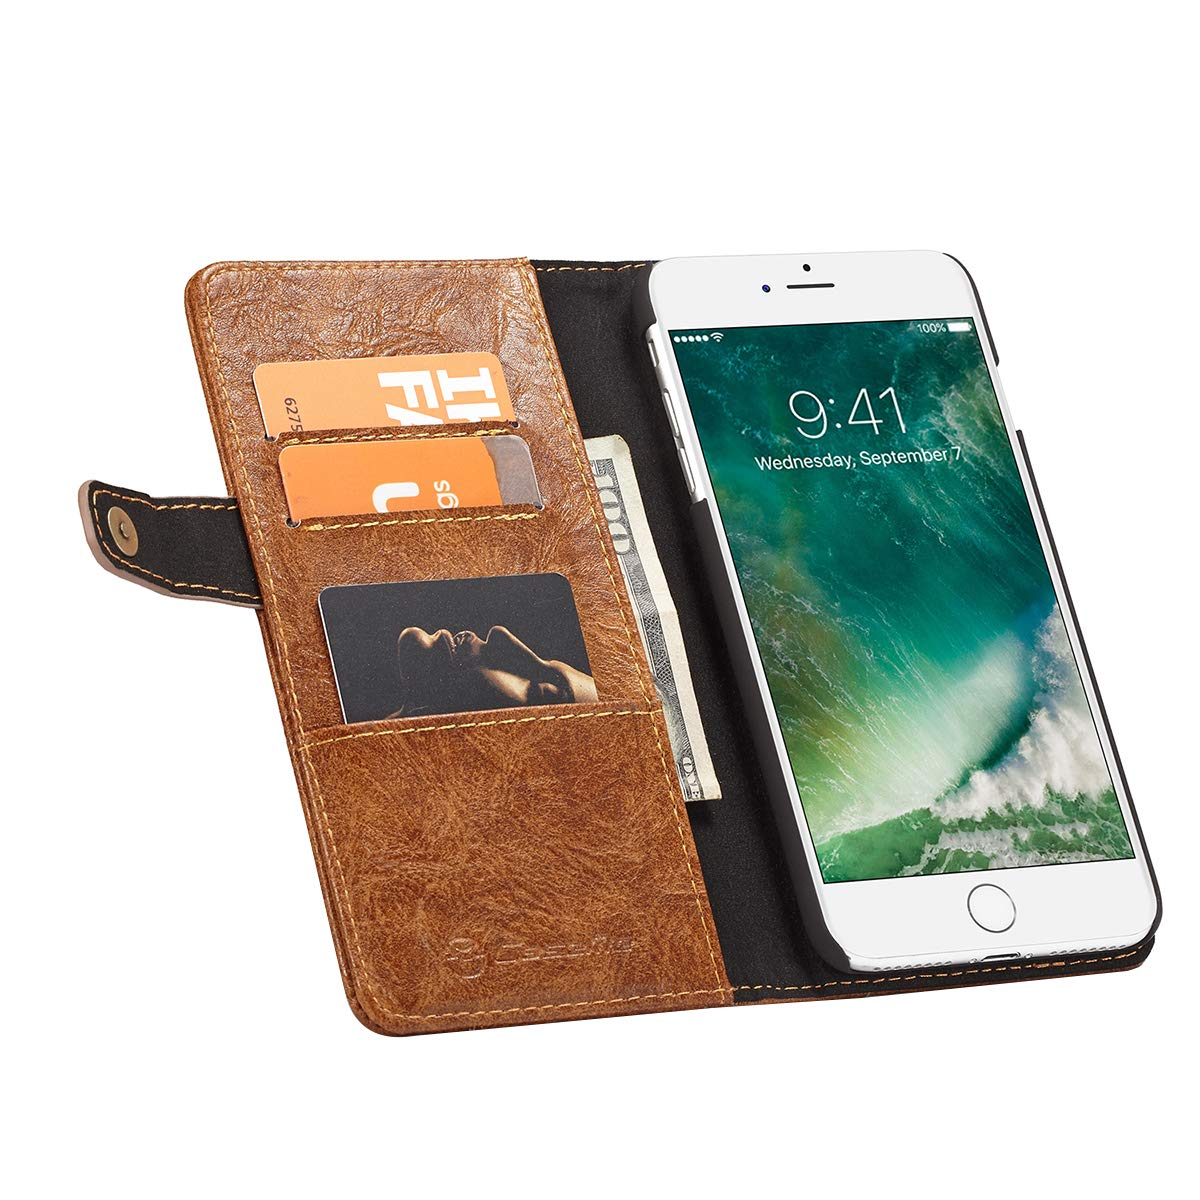 Hemobllo Case for iPhone 7 Plus//8 Plus Genuine Leather Phone Cover SLR Side Buckle Business Holster Outer Double Card Position Pluggable Traffic Card Inside 3 Card Position 1 Wallet Hard Phone Case for iPhone 7 Plus//8 Plus Brown